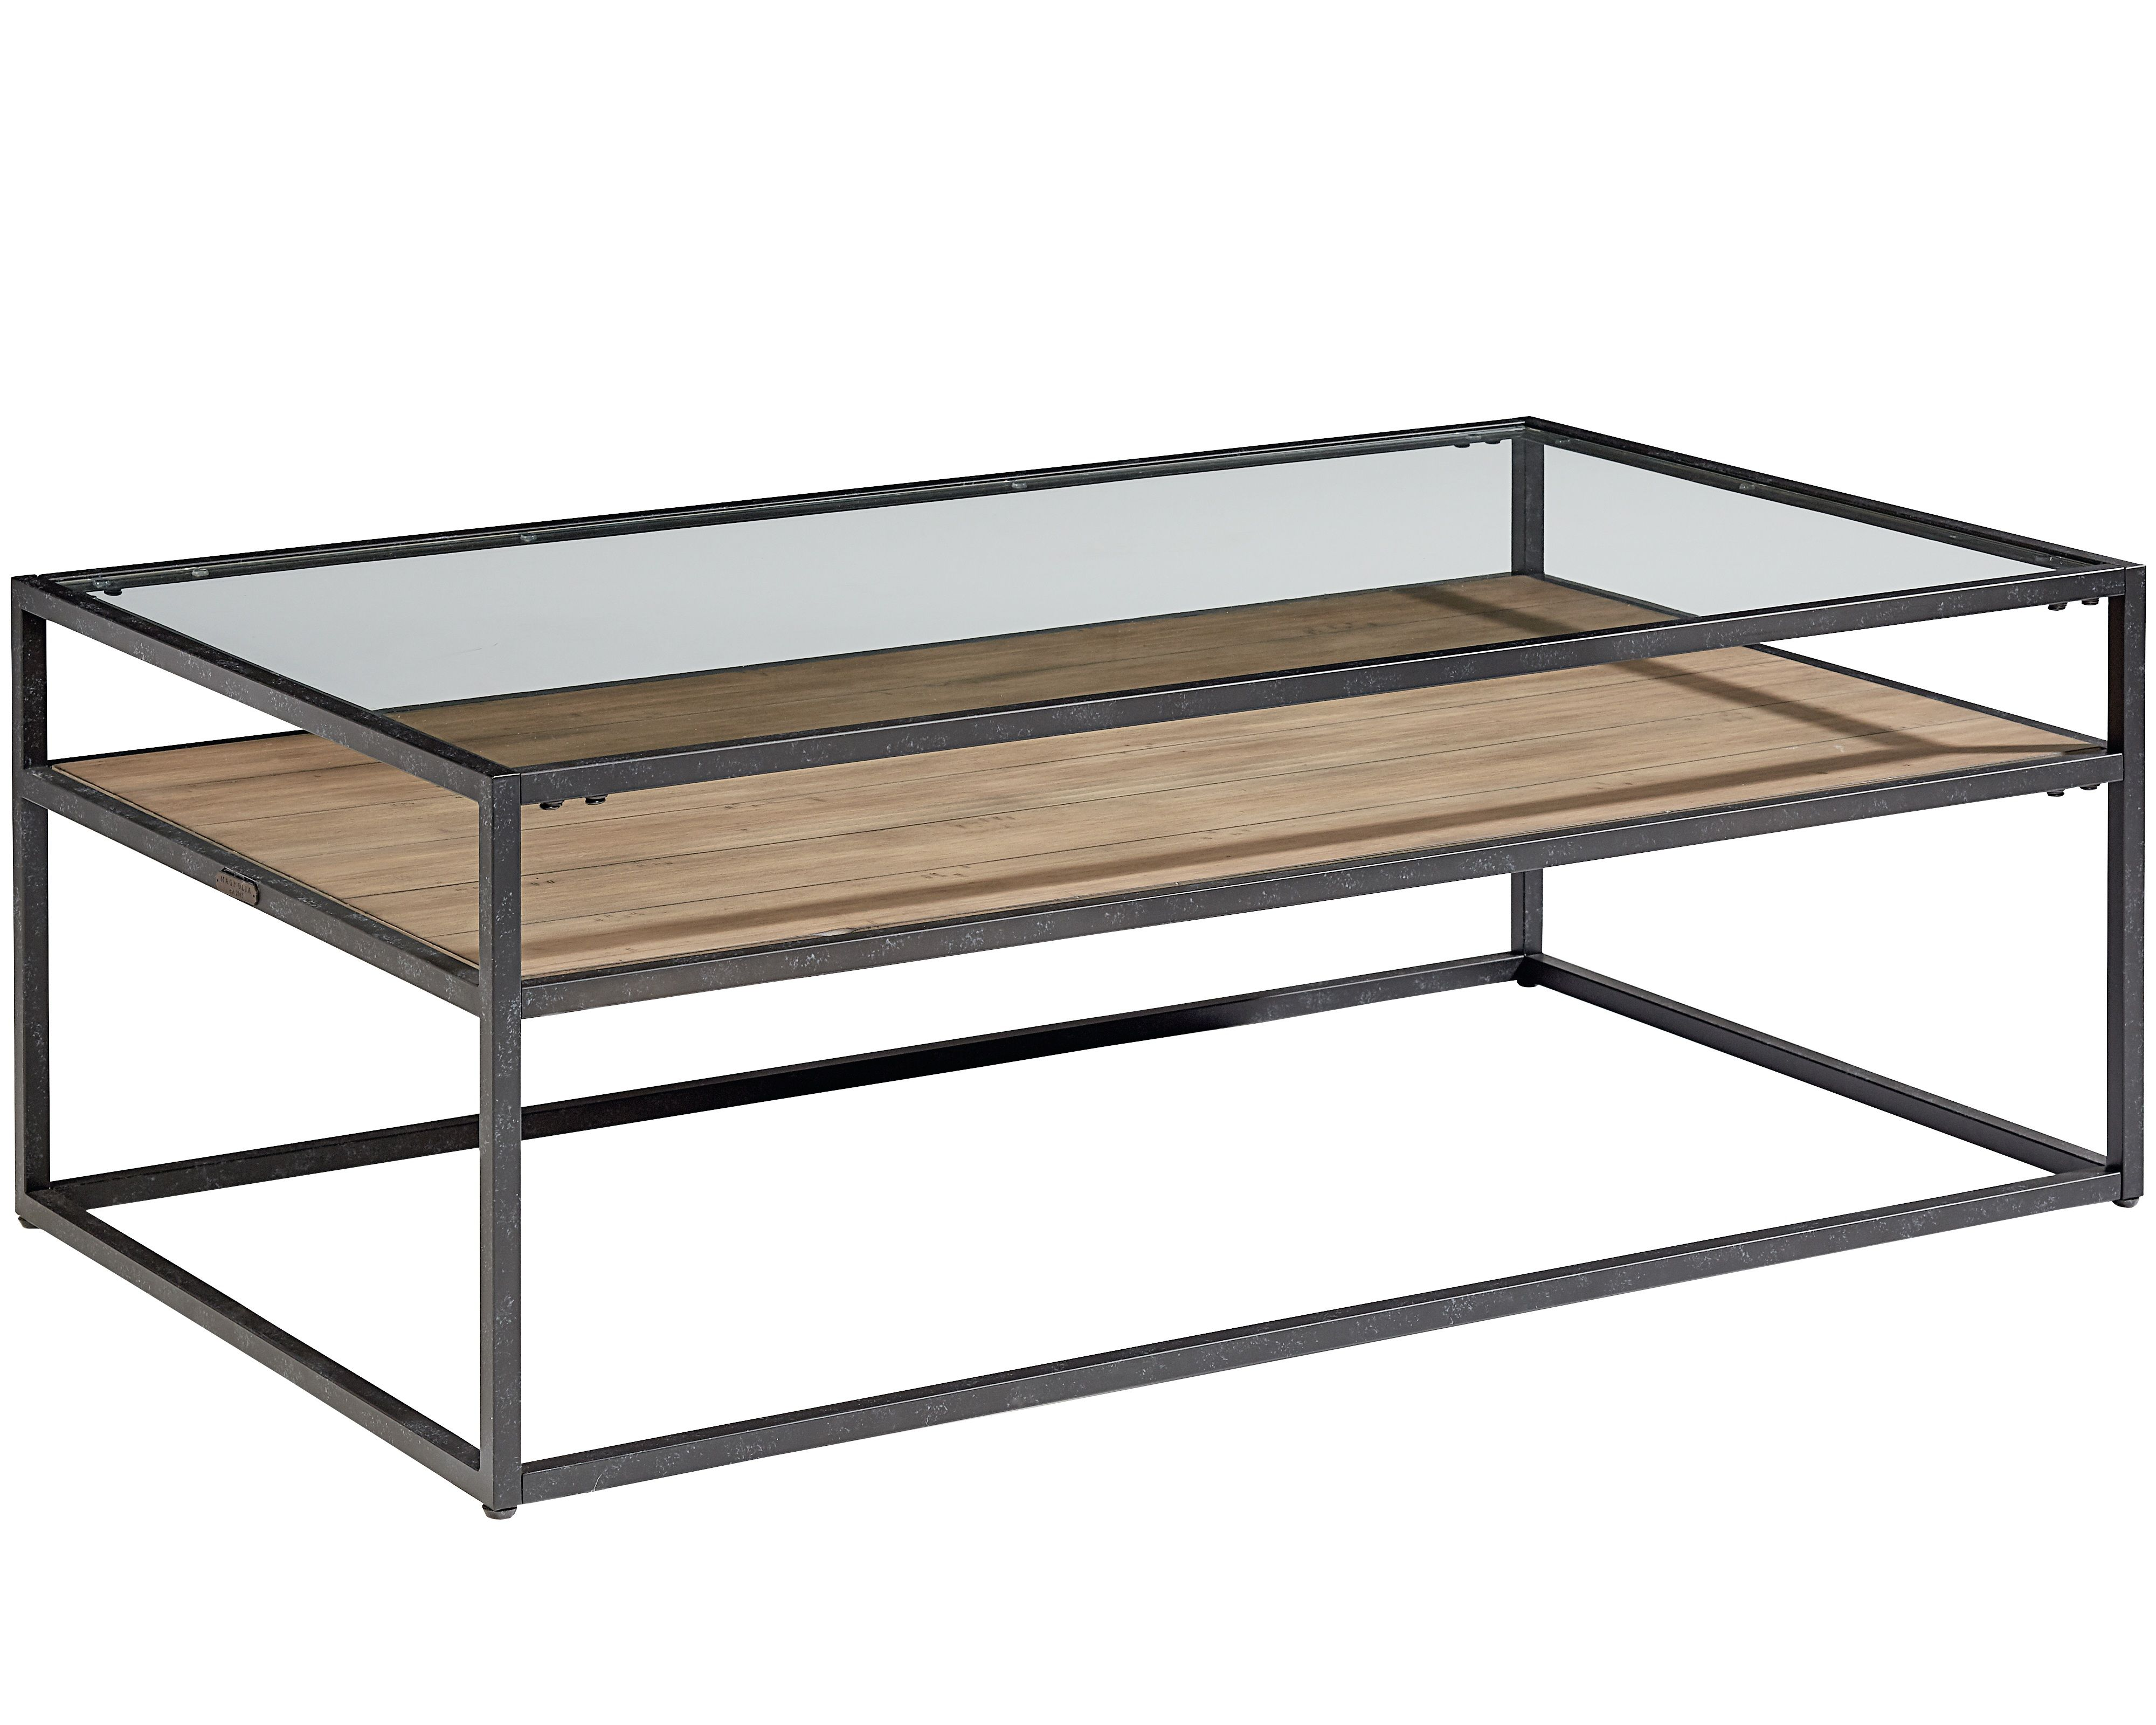 Marvelous Showcase Coffee Table Magnolia Home Plain Living Room In Gmtry Best Dining Table And Chair Ideas Images Gmtryco